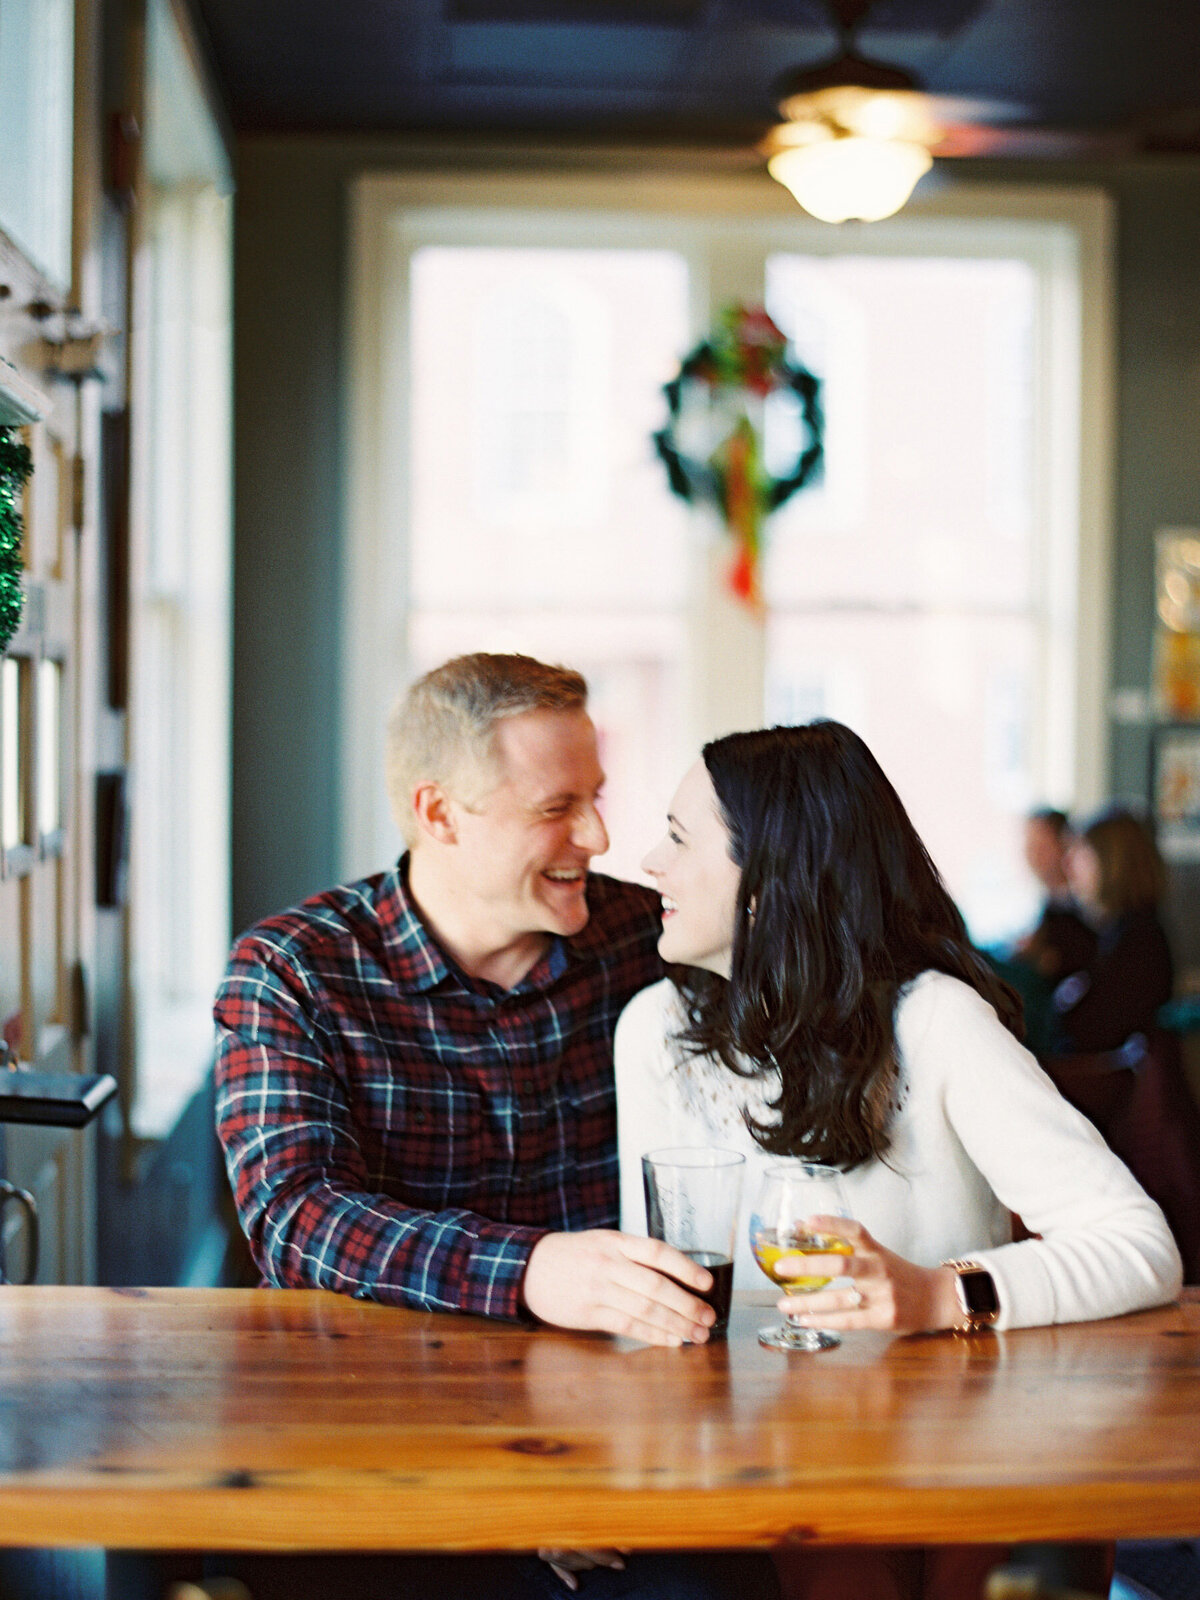 charleston-fall-engagement-photos-by-philip-casey-017